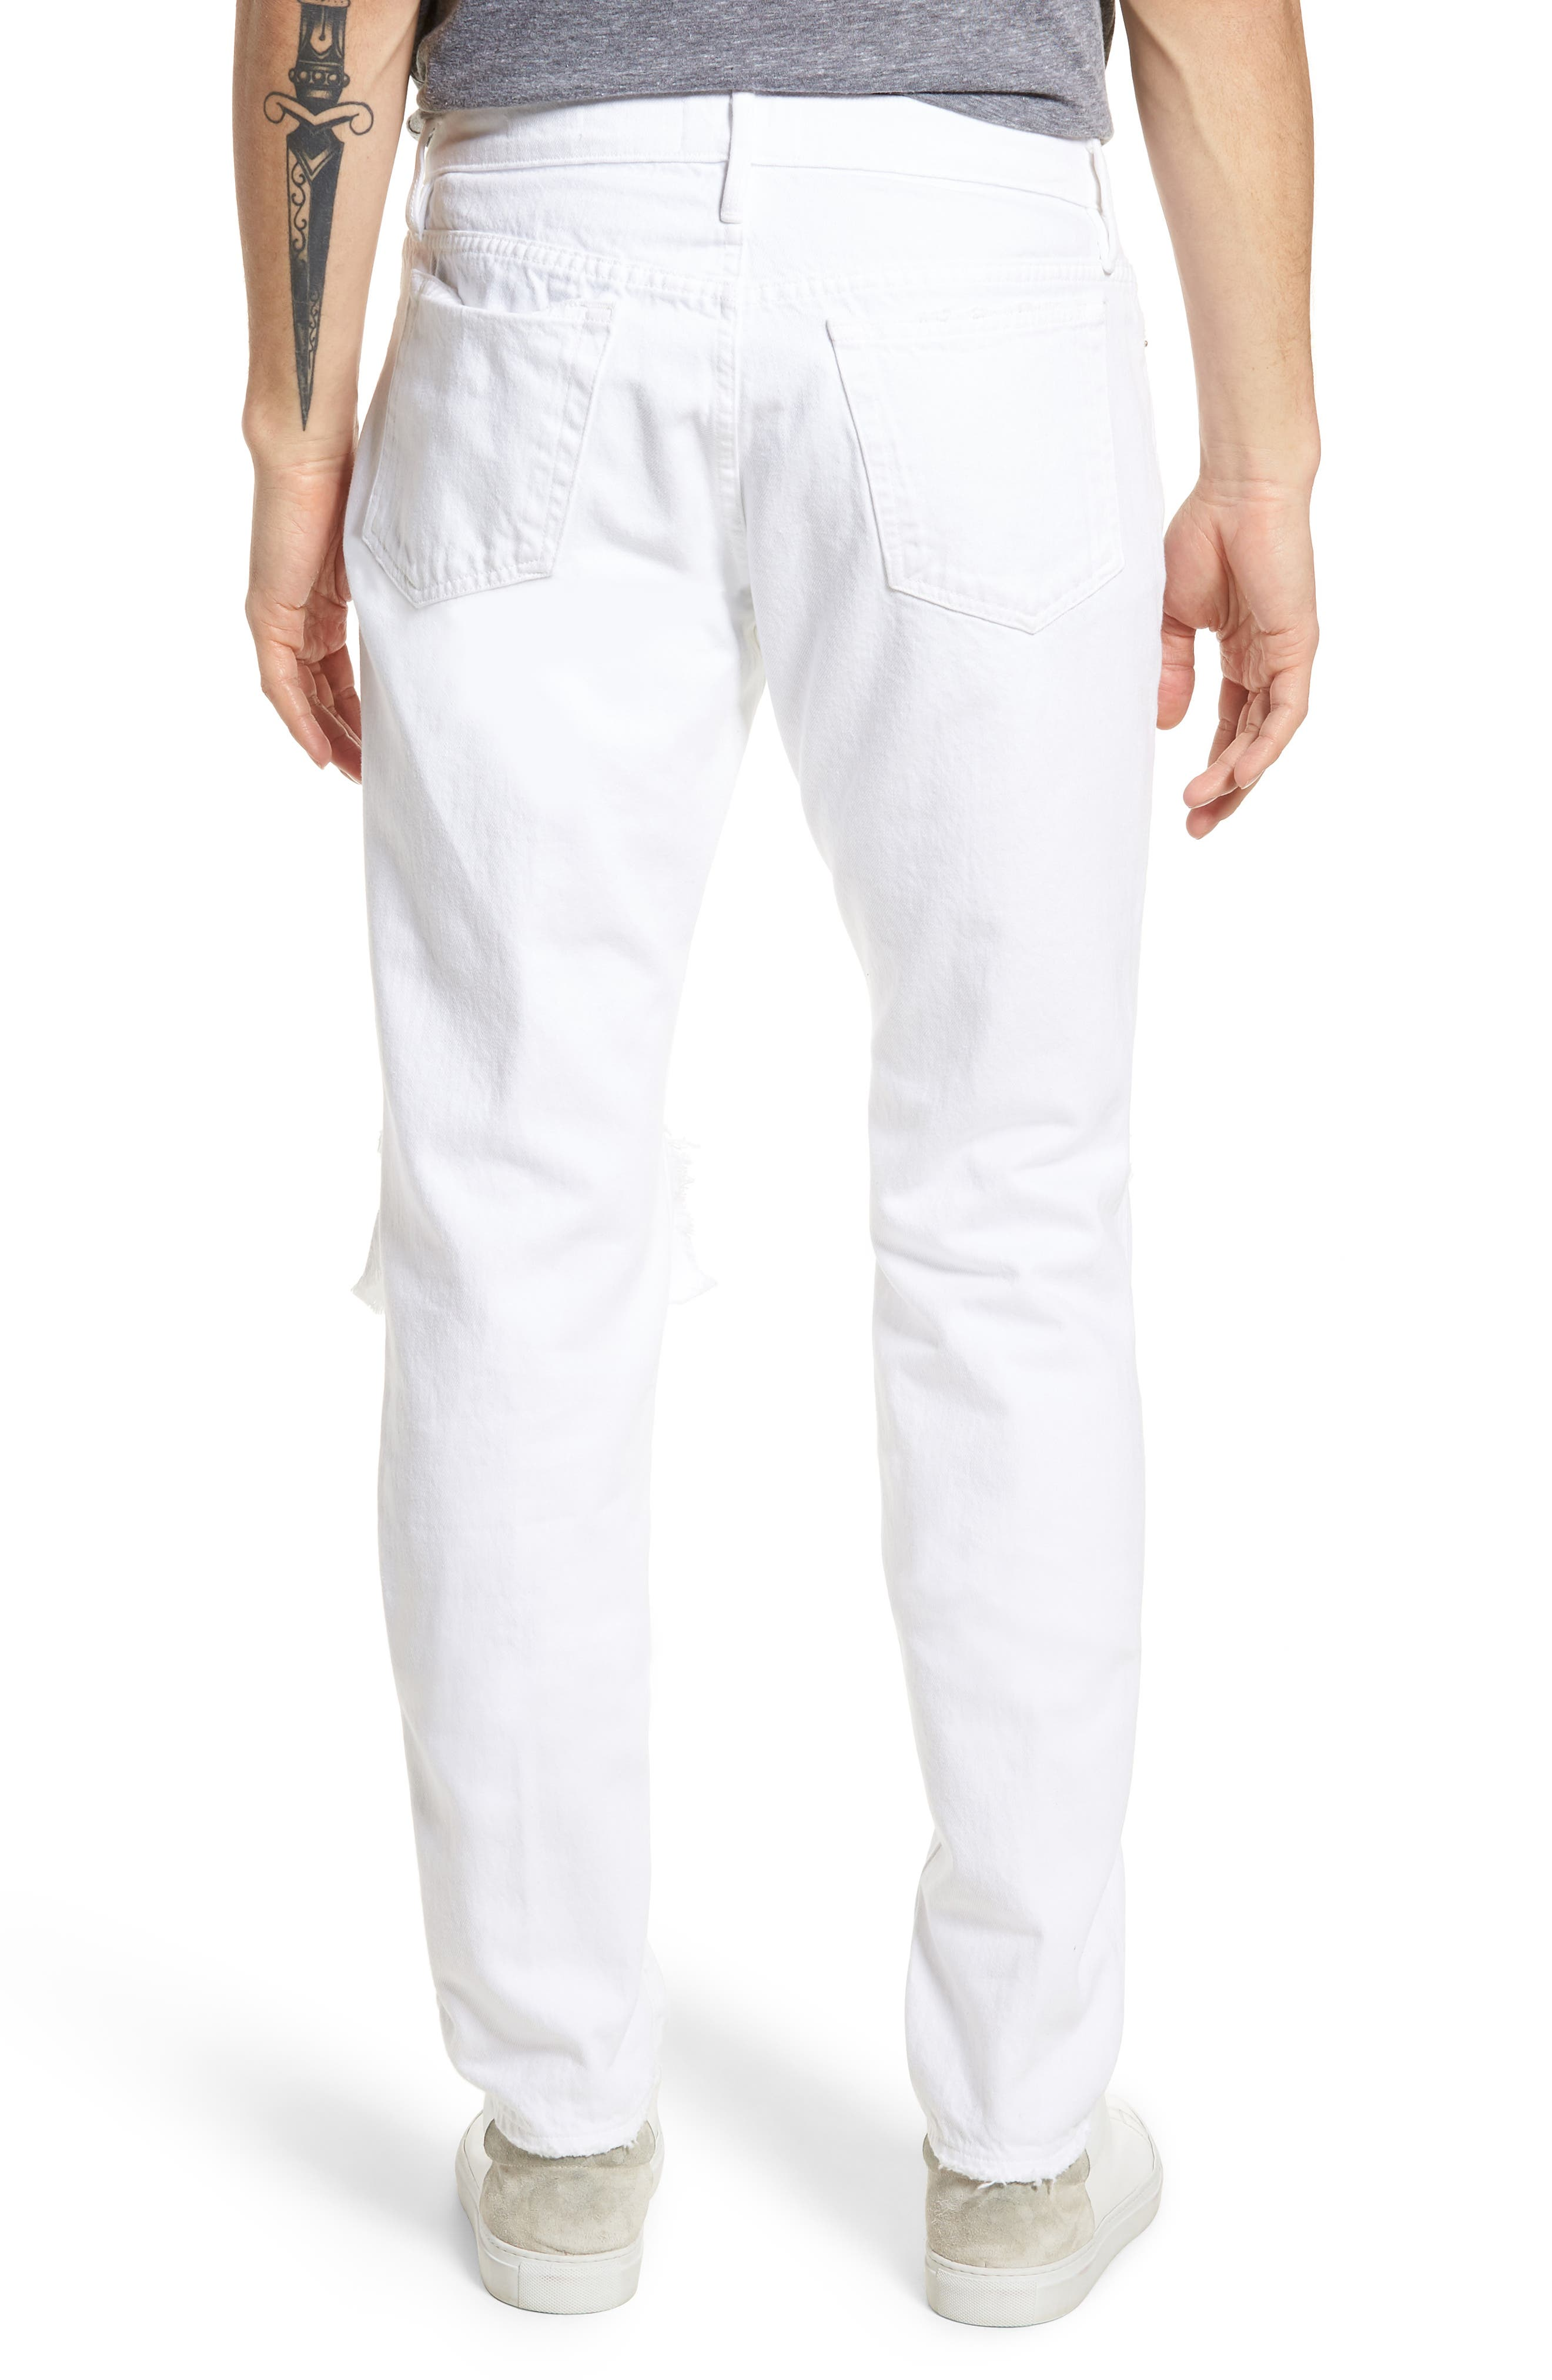 L'Homme Skinny Fit Jeans,                             Alternate thumbnail 2, color,                             WHITE OUT